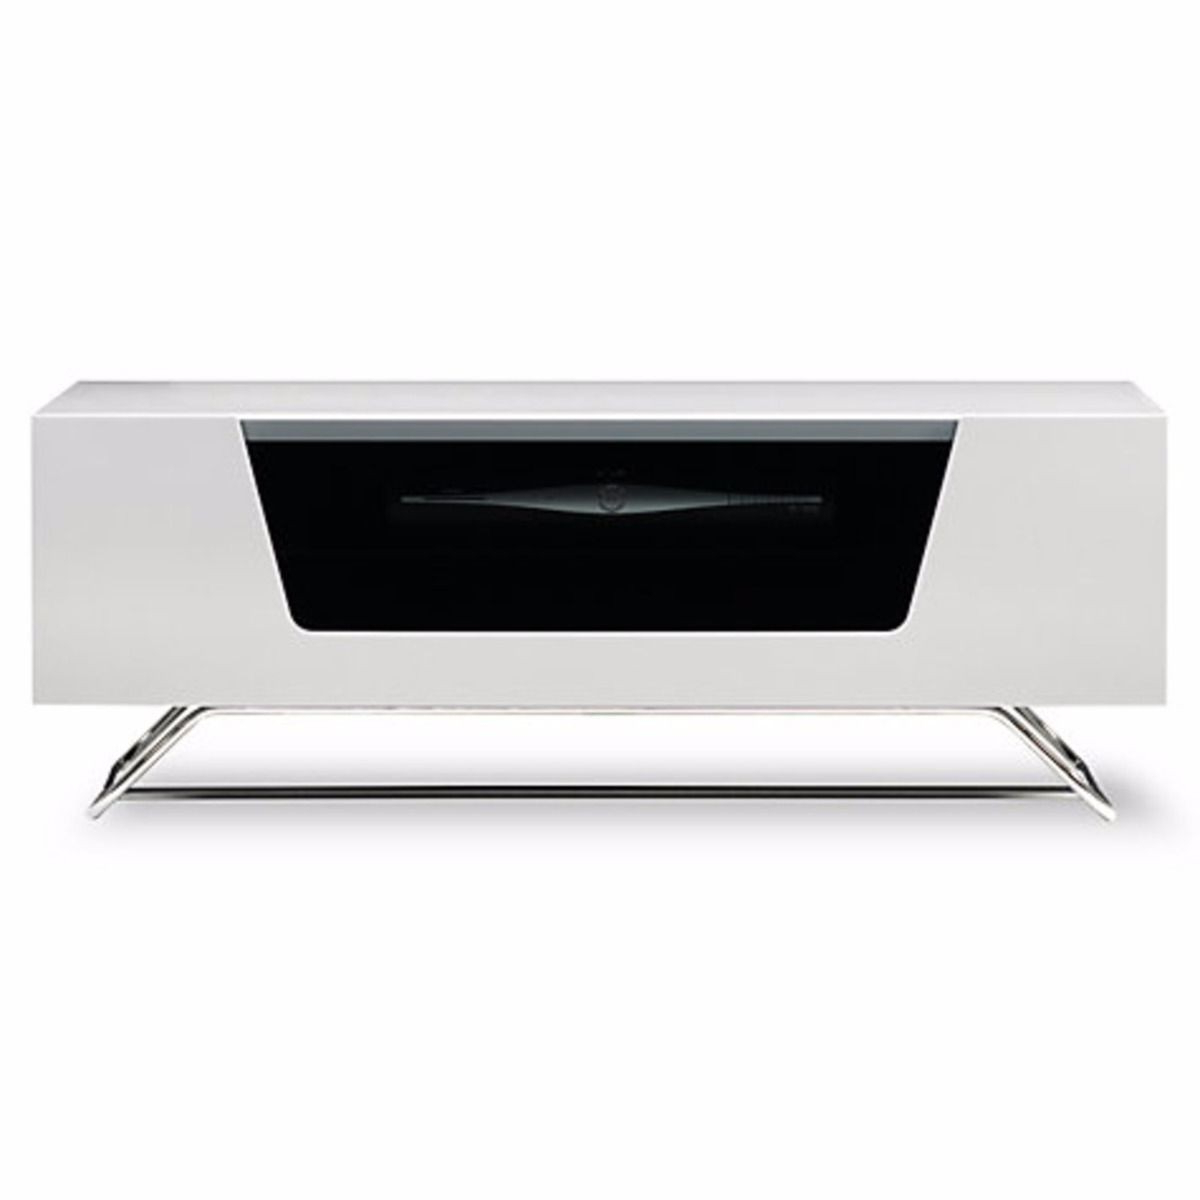 Current Alphason Chromium 2 Tv Stand Cro2 1000Cb Wht White Gloss Tv Cabinet Intended For High Gloss White Tv Cabinets (View 20 of 20)